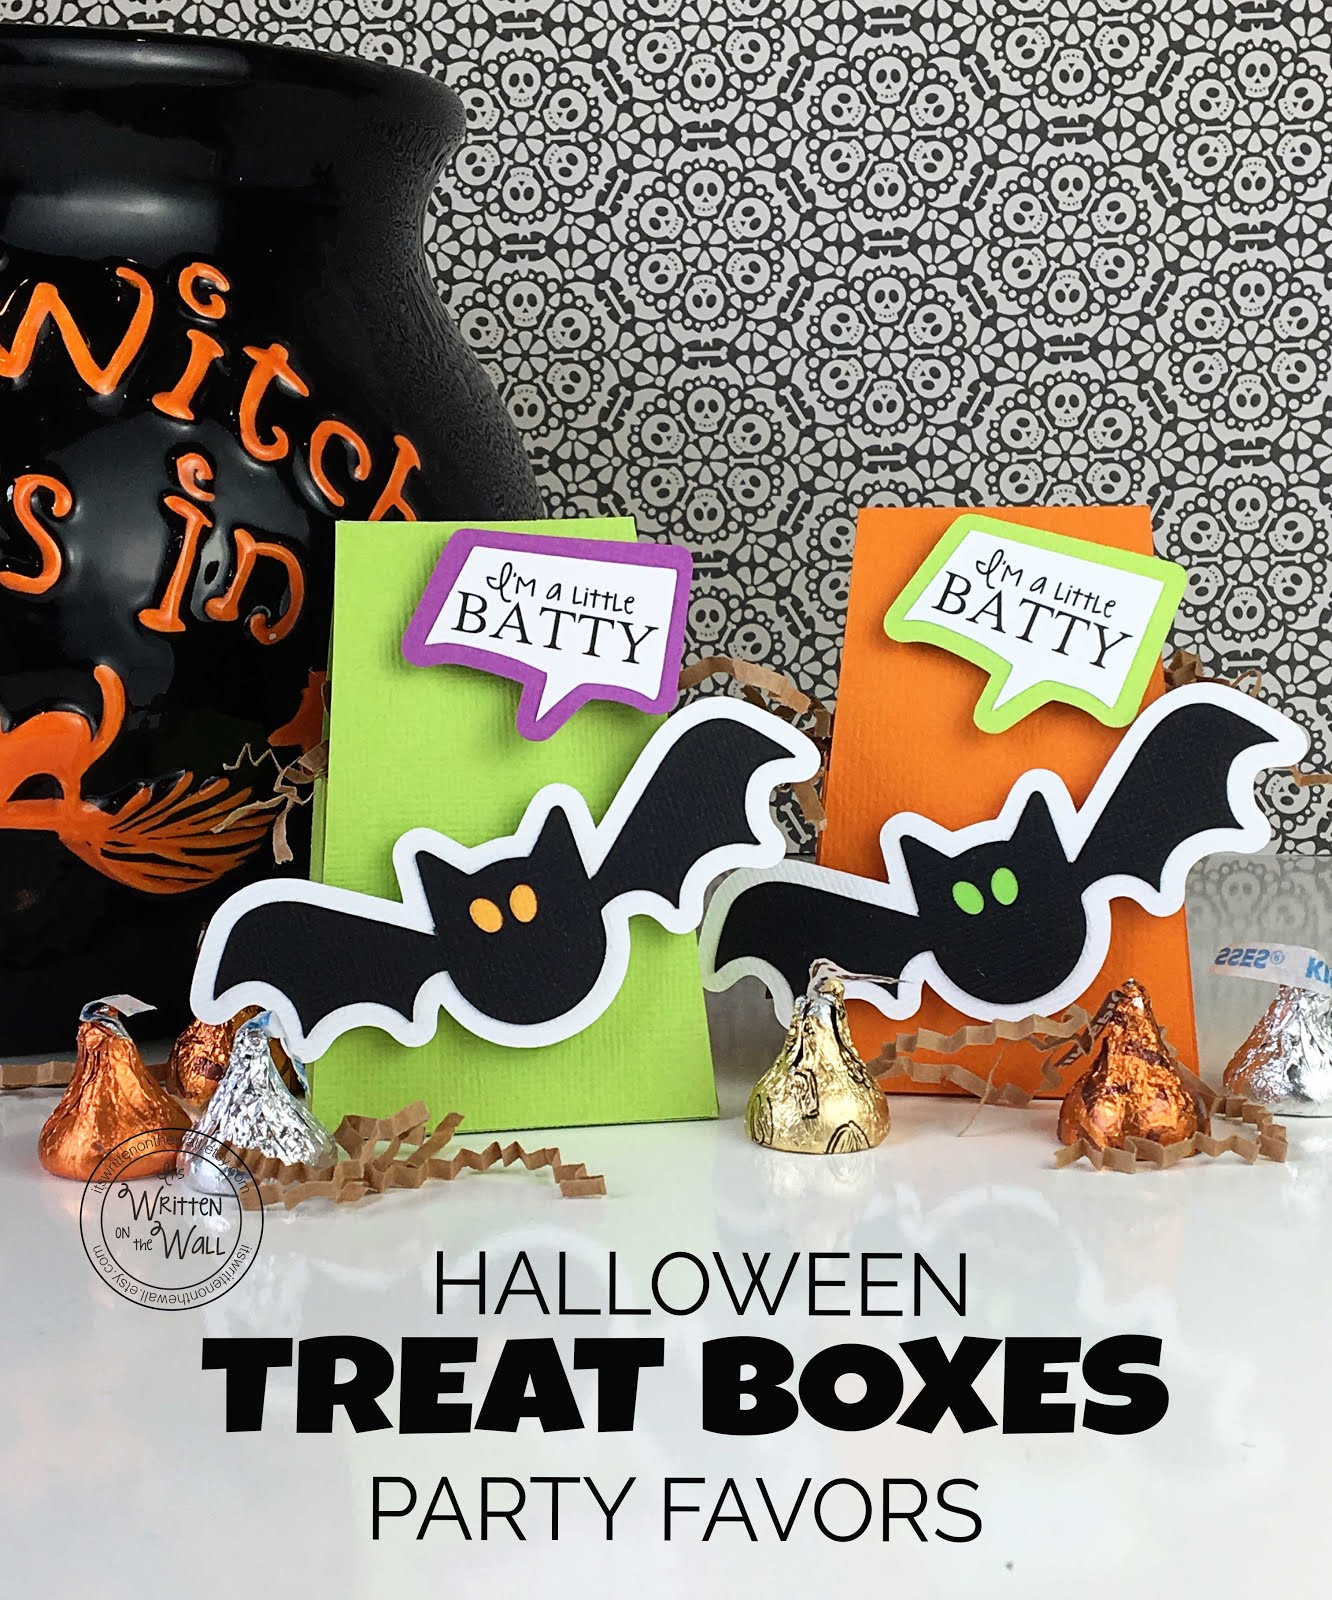 I'm a little batty Treat Boxes